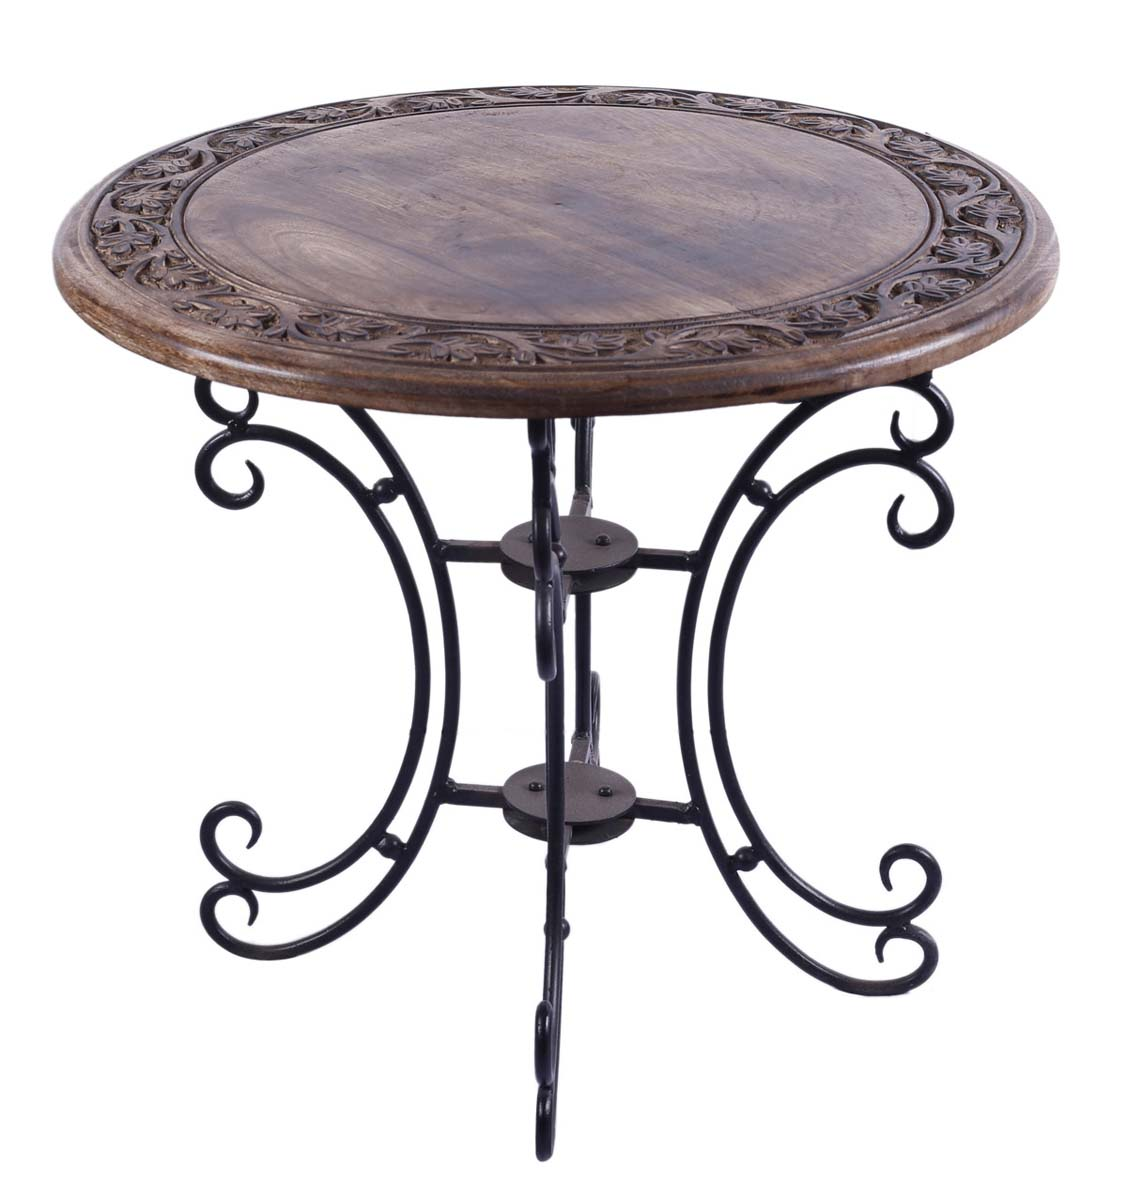 bulk whole round accent table mango wood hand carved rustic folding coffee with iron tall bistro end tables drawers leg kit gold drum metal and glass outdoor side cooler parsons